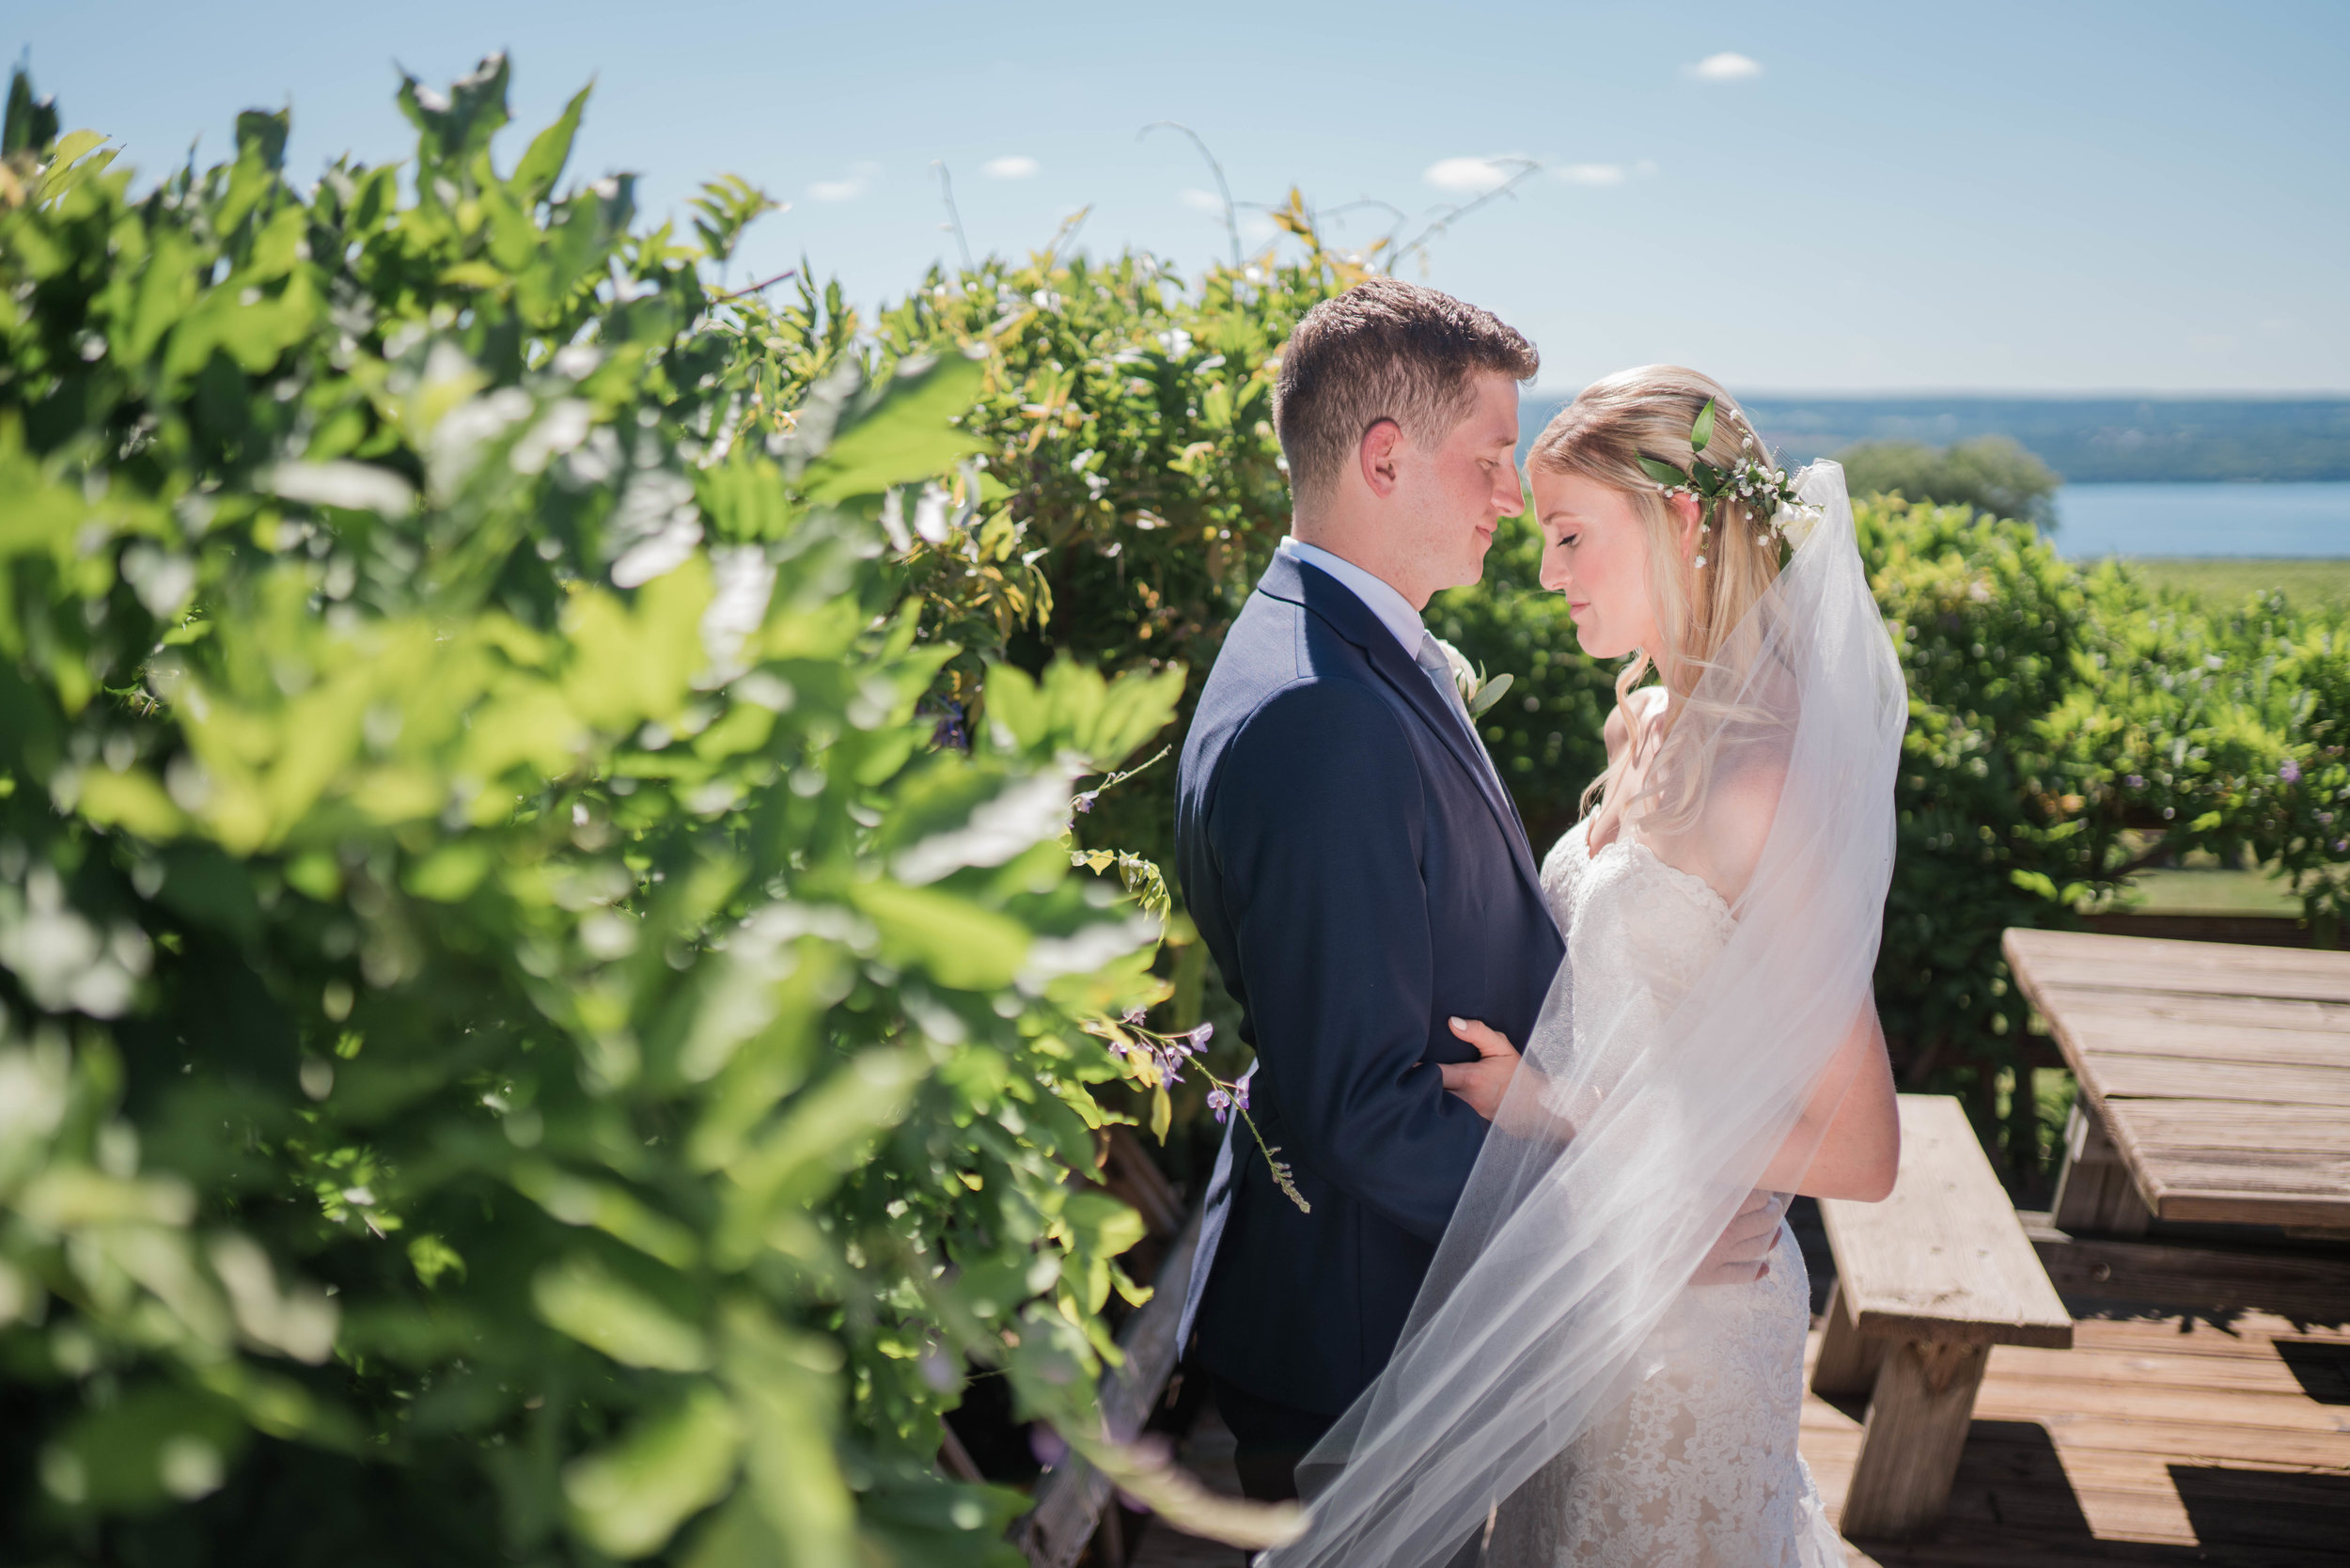 Wedding Photography at Wagner Vineyards Ginny Lee Cafe Finger Lakes by Stefan Ludwig Photography-35.jpg